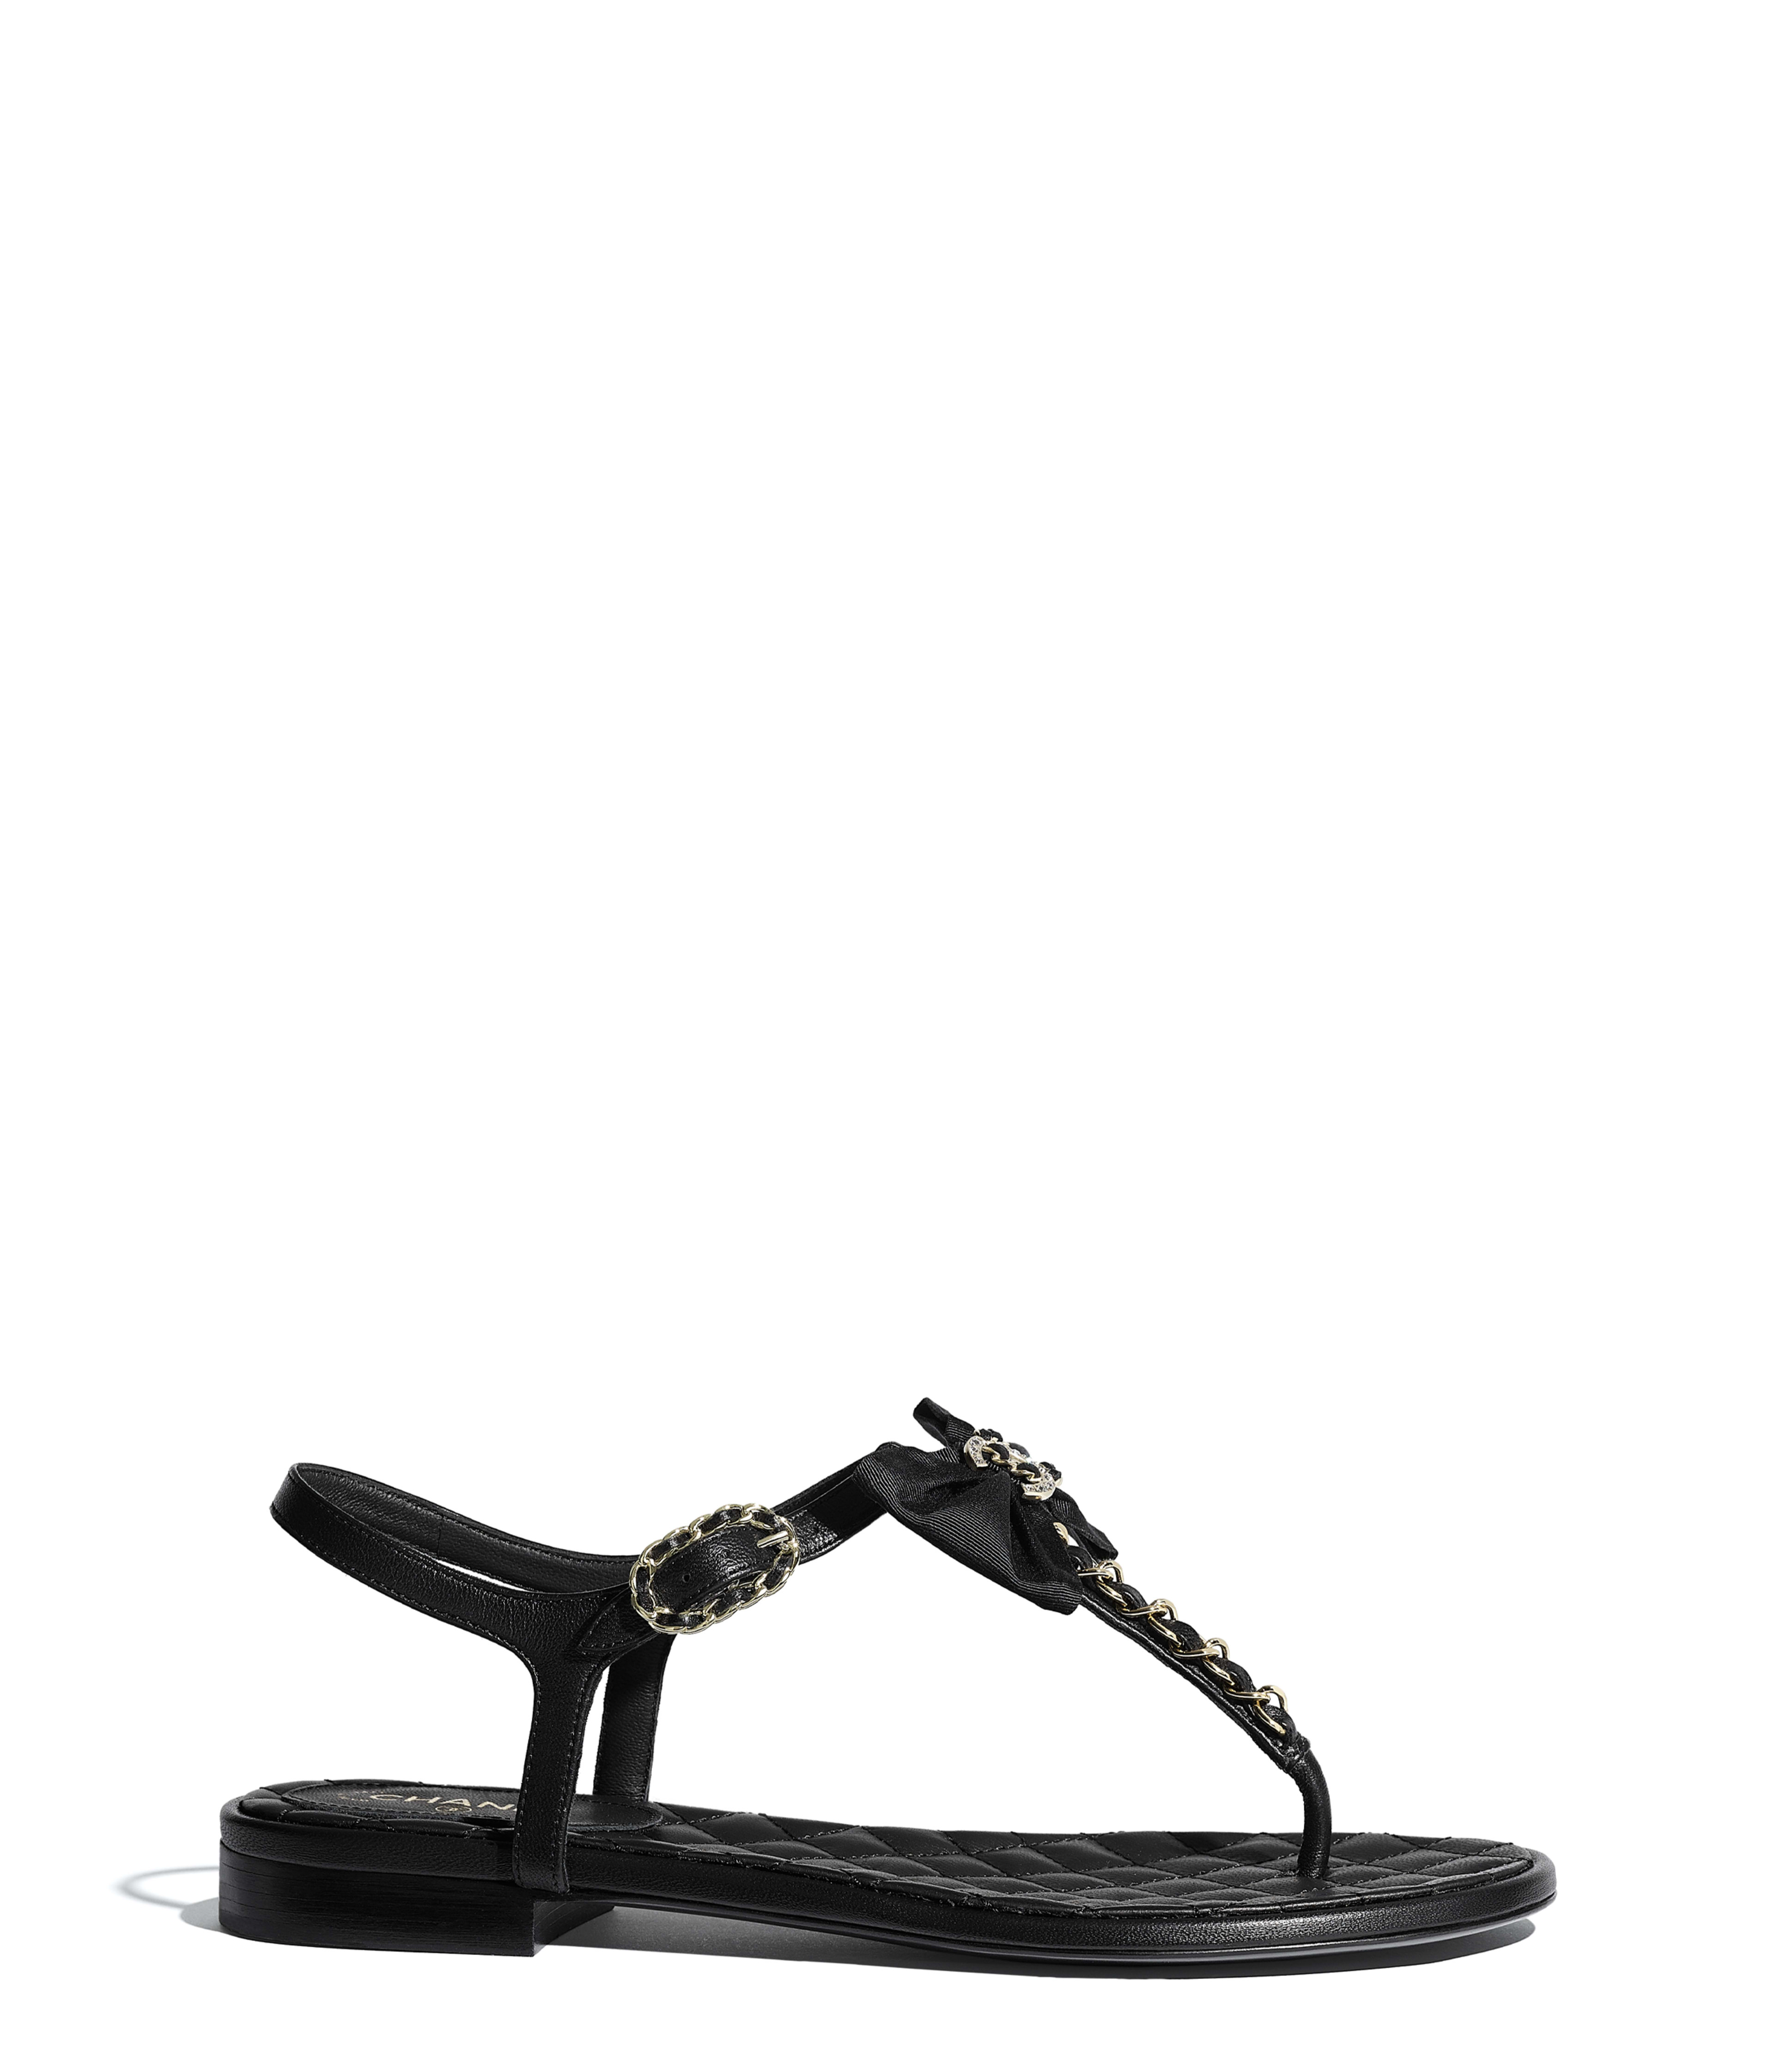 Sandals - Shoes | CHANEL - Page 2